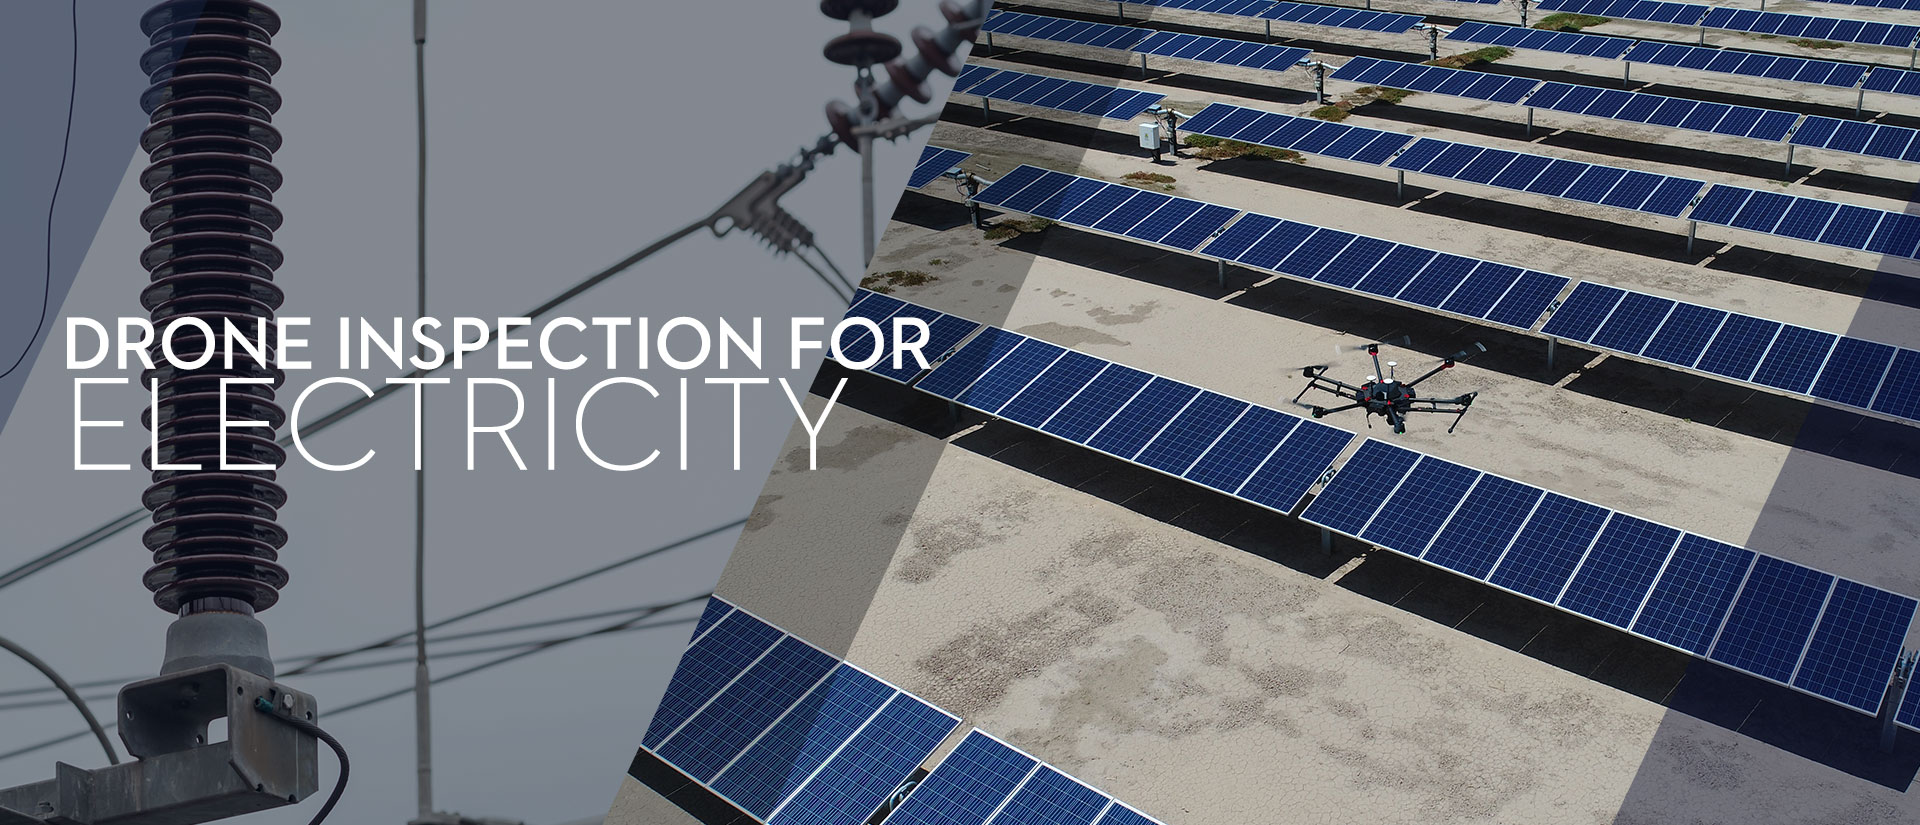 Blog-Drone-Inspection-Electricity